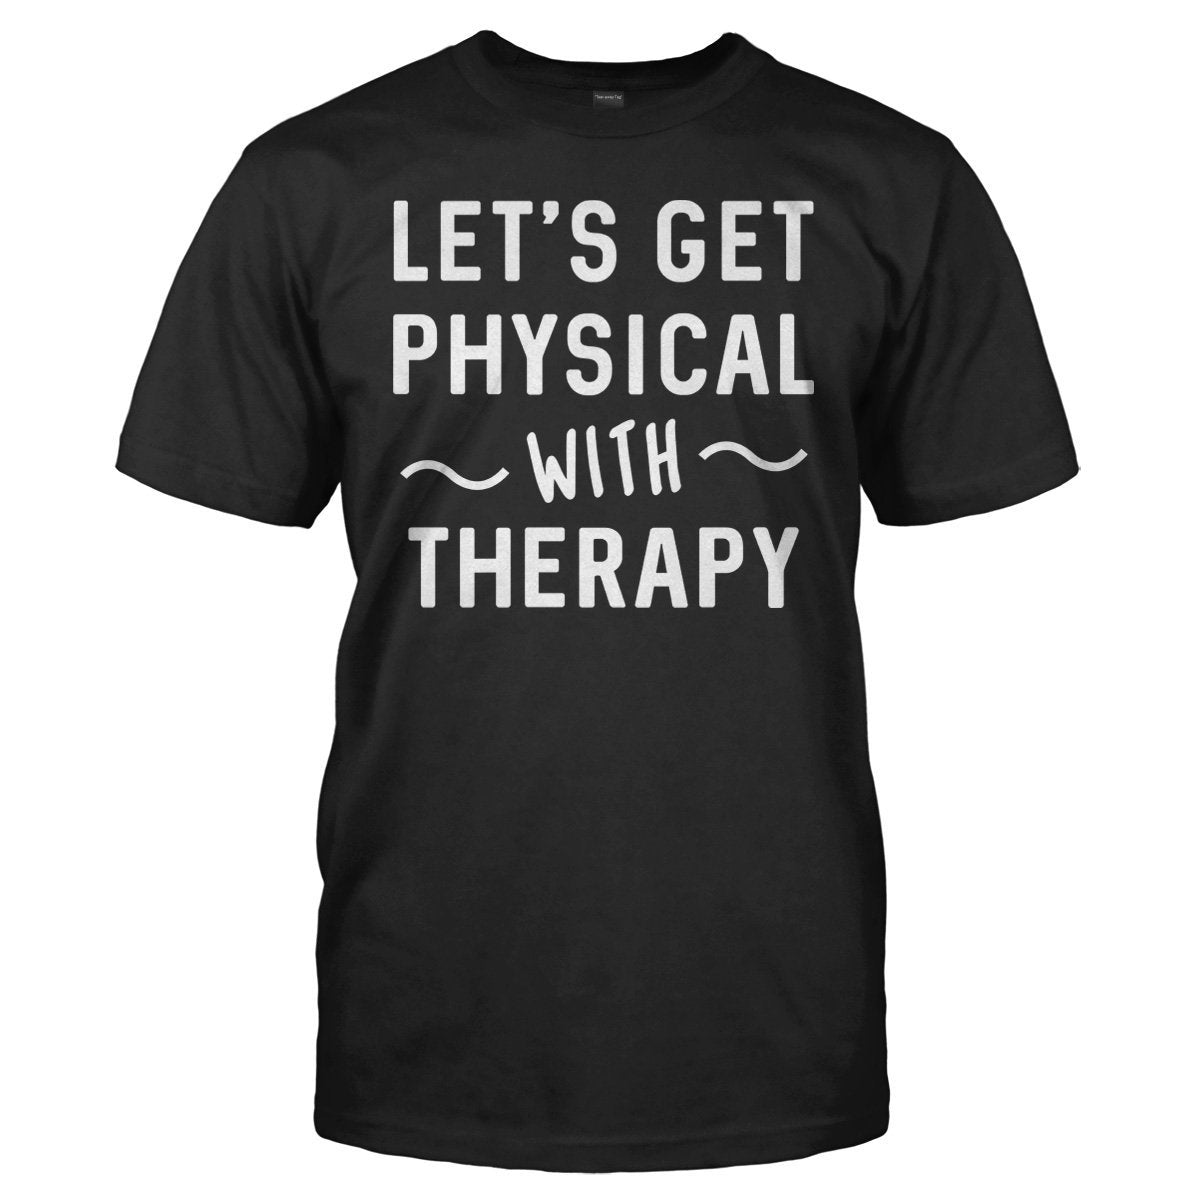 Let's Get Physical With Therapy - T Shirt